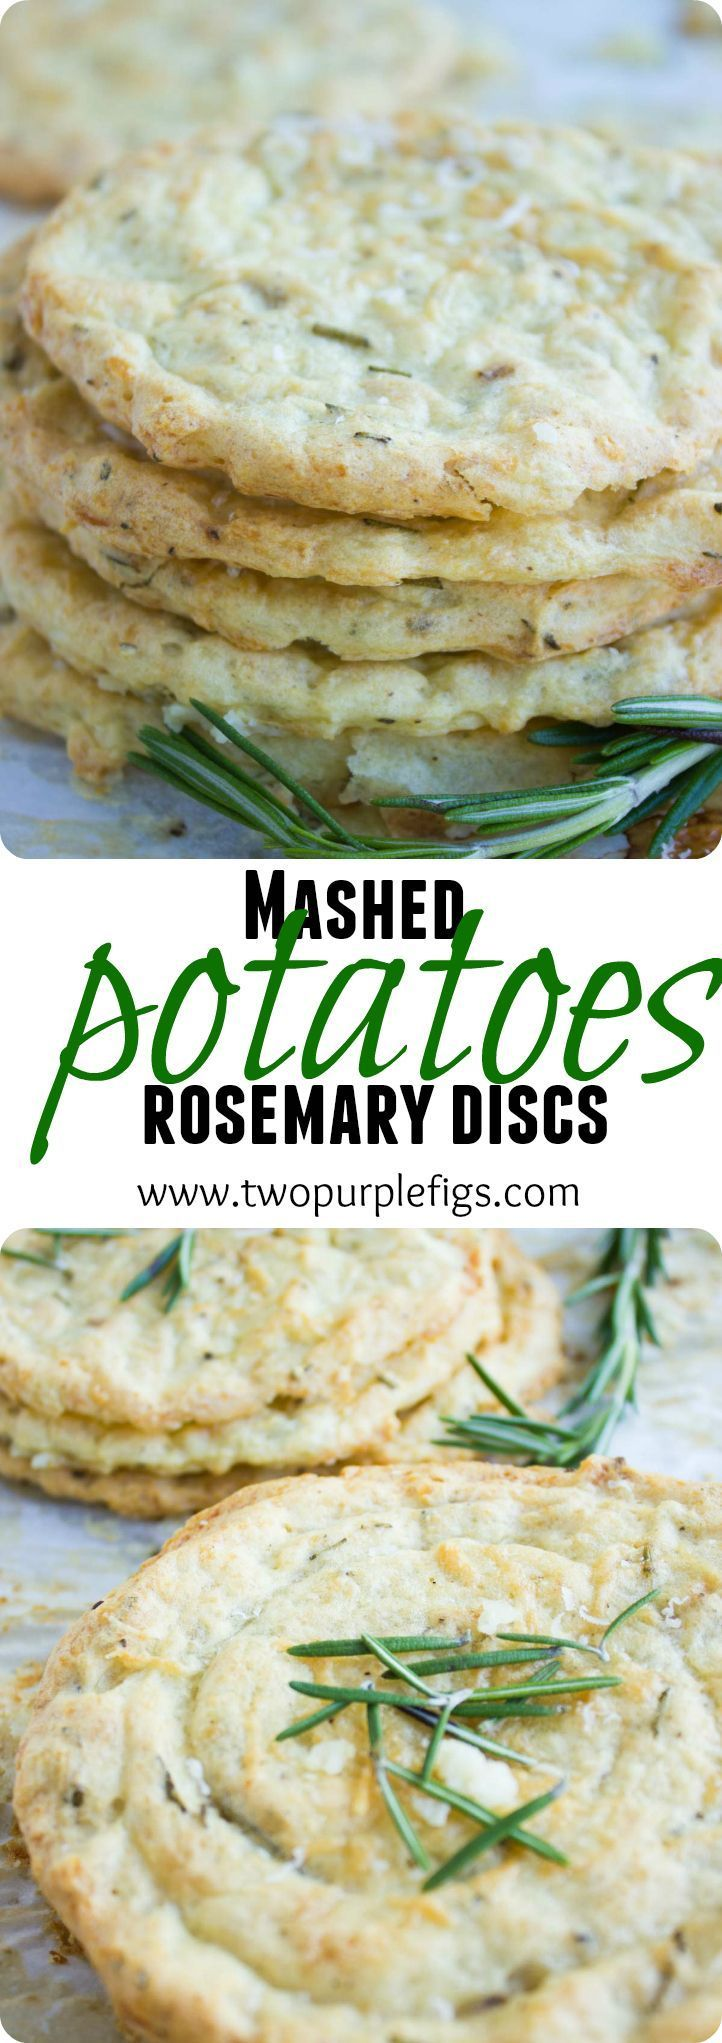 Got left over mashed potatoes? Transform them into these mashed potato rosemary crips--a crisp masked potato cookie with a soft interior flavored with fresh rosemary! Perfectly gluten free. www.twopurplefigs.com